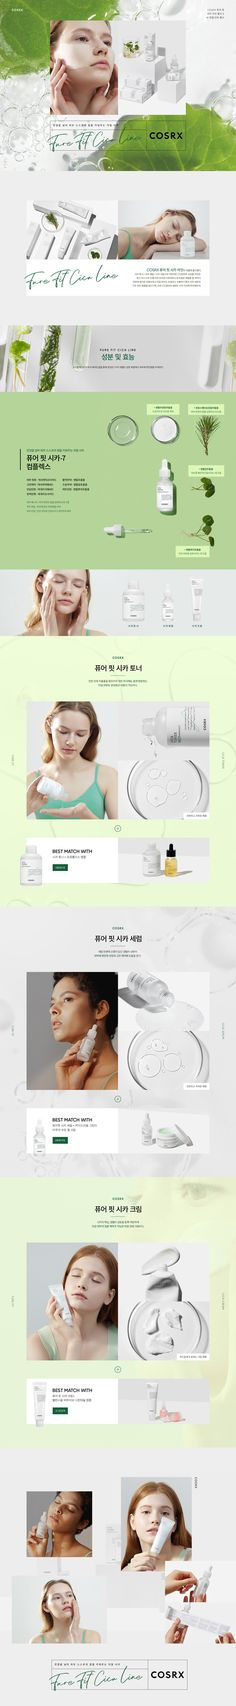 Web Layout, Layout Design, Web Design, Graphic Design, Cosmetic Design, Event Page, Banner, Concept, Cosmetics